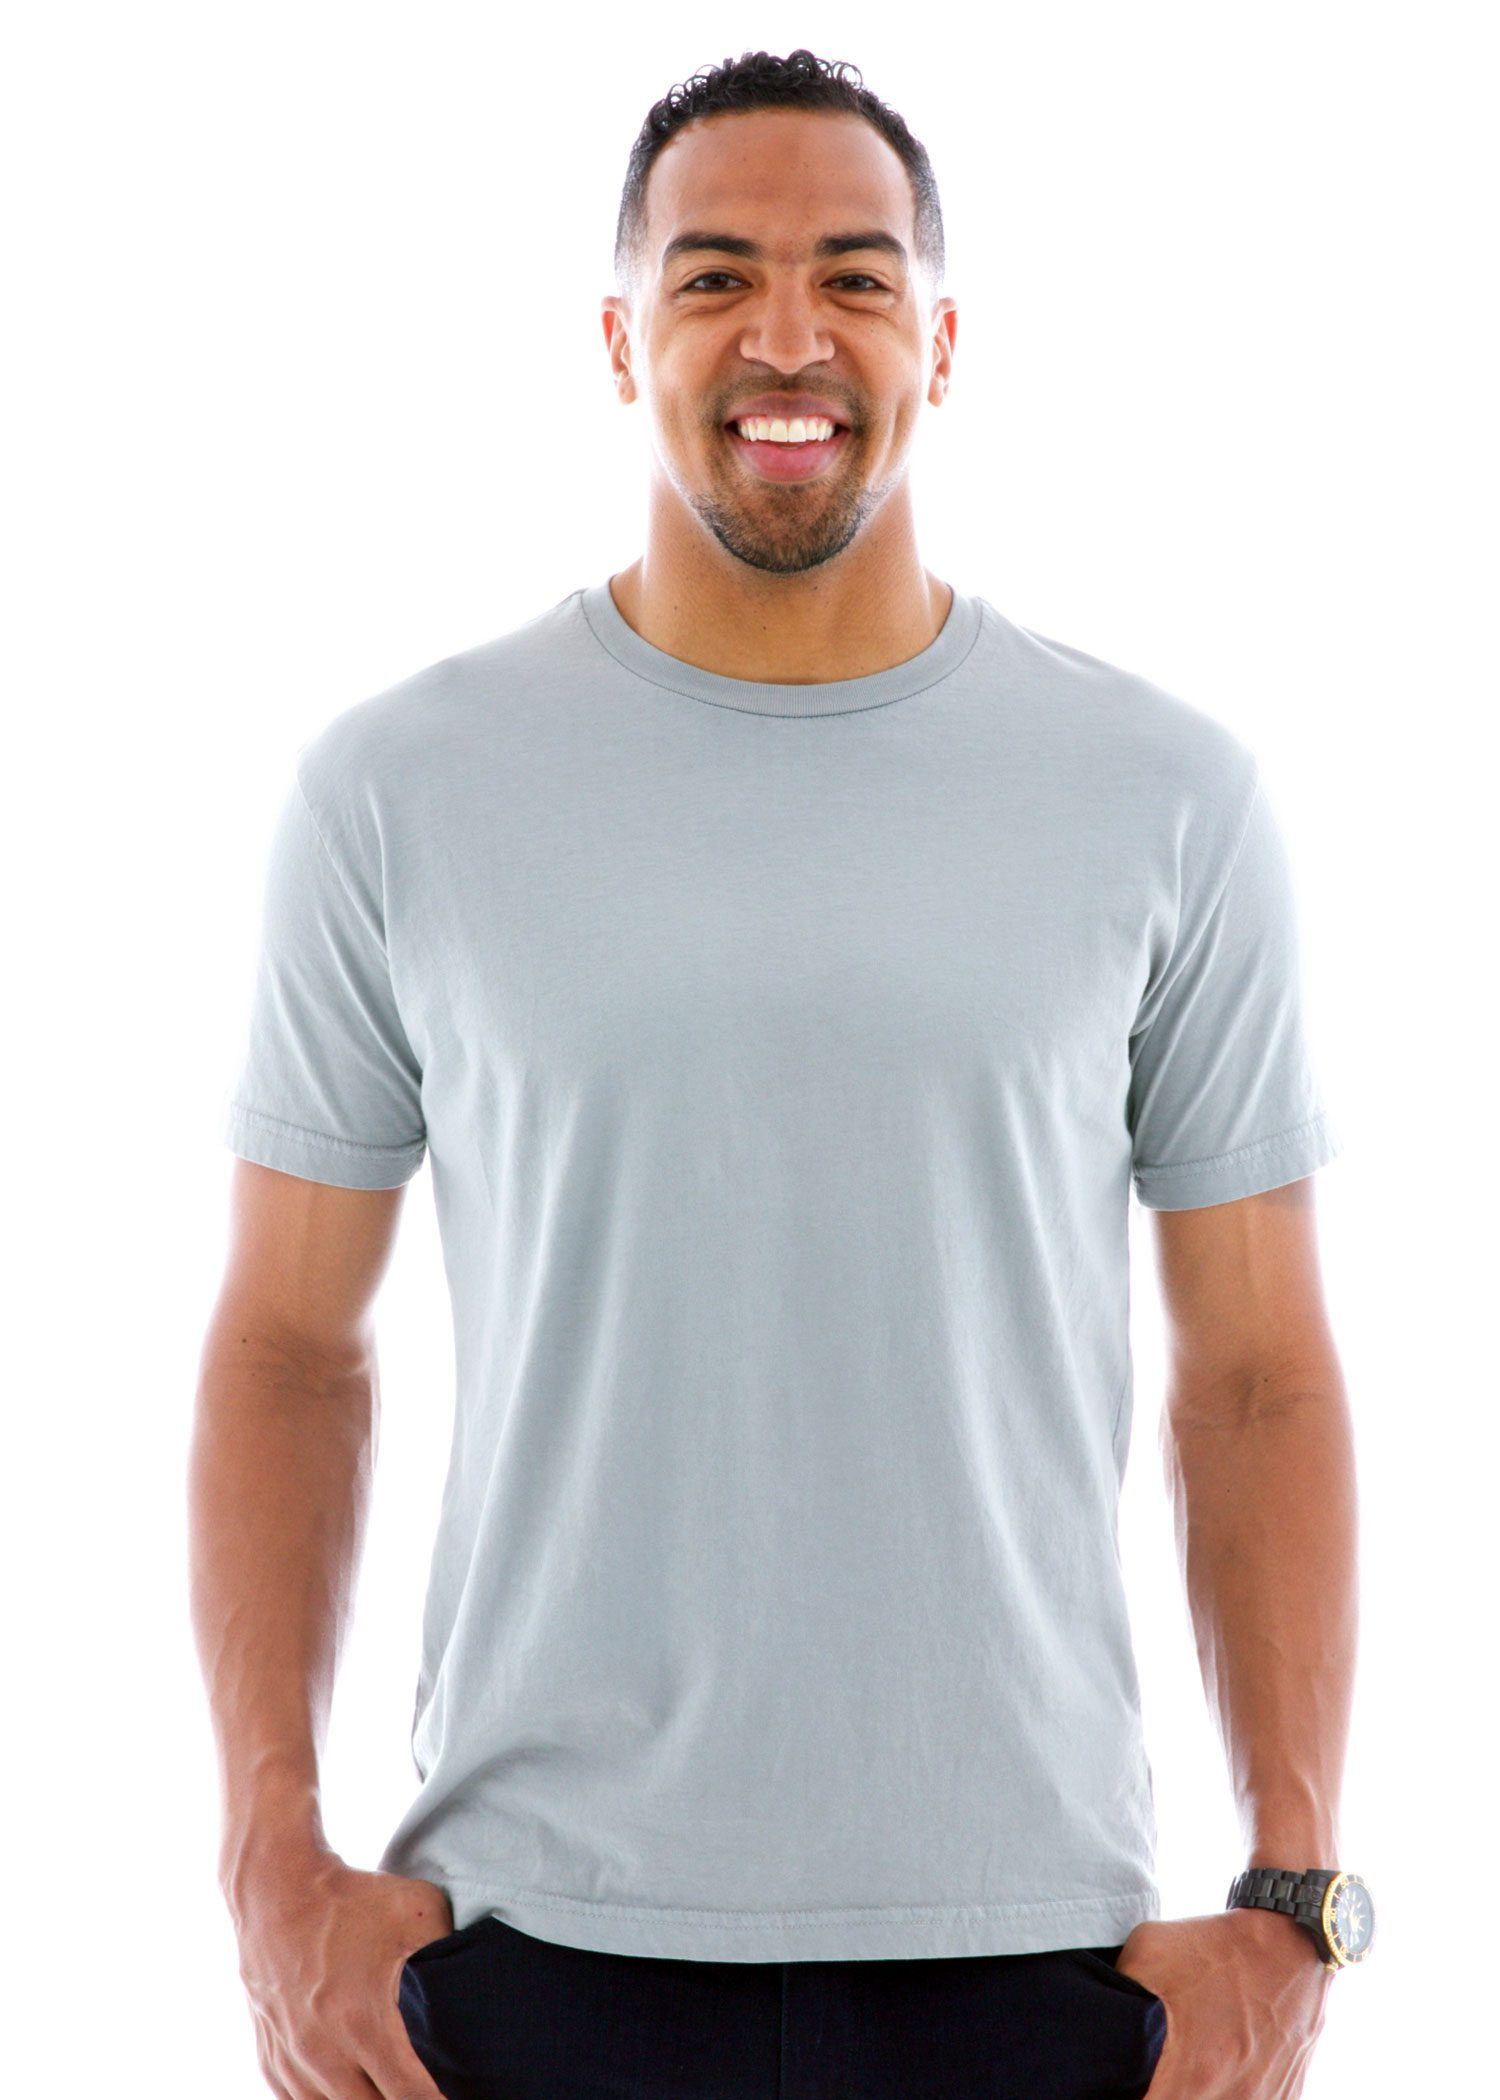 Men's Fine Jersey Crew Short Sleeve T-Shirt